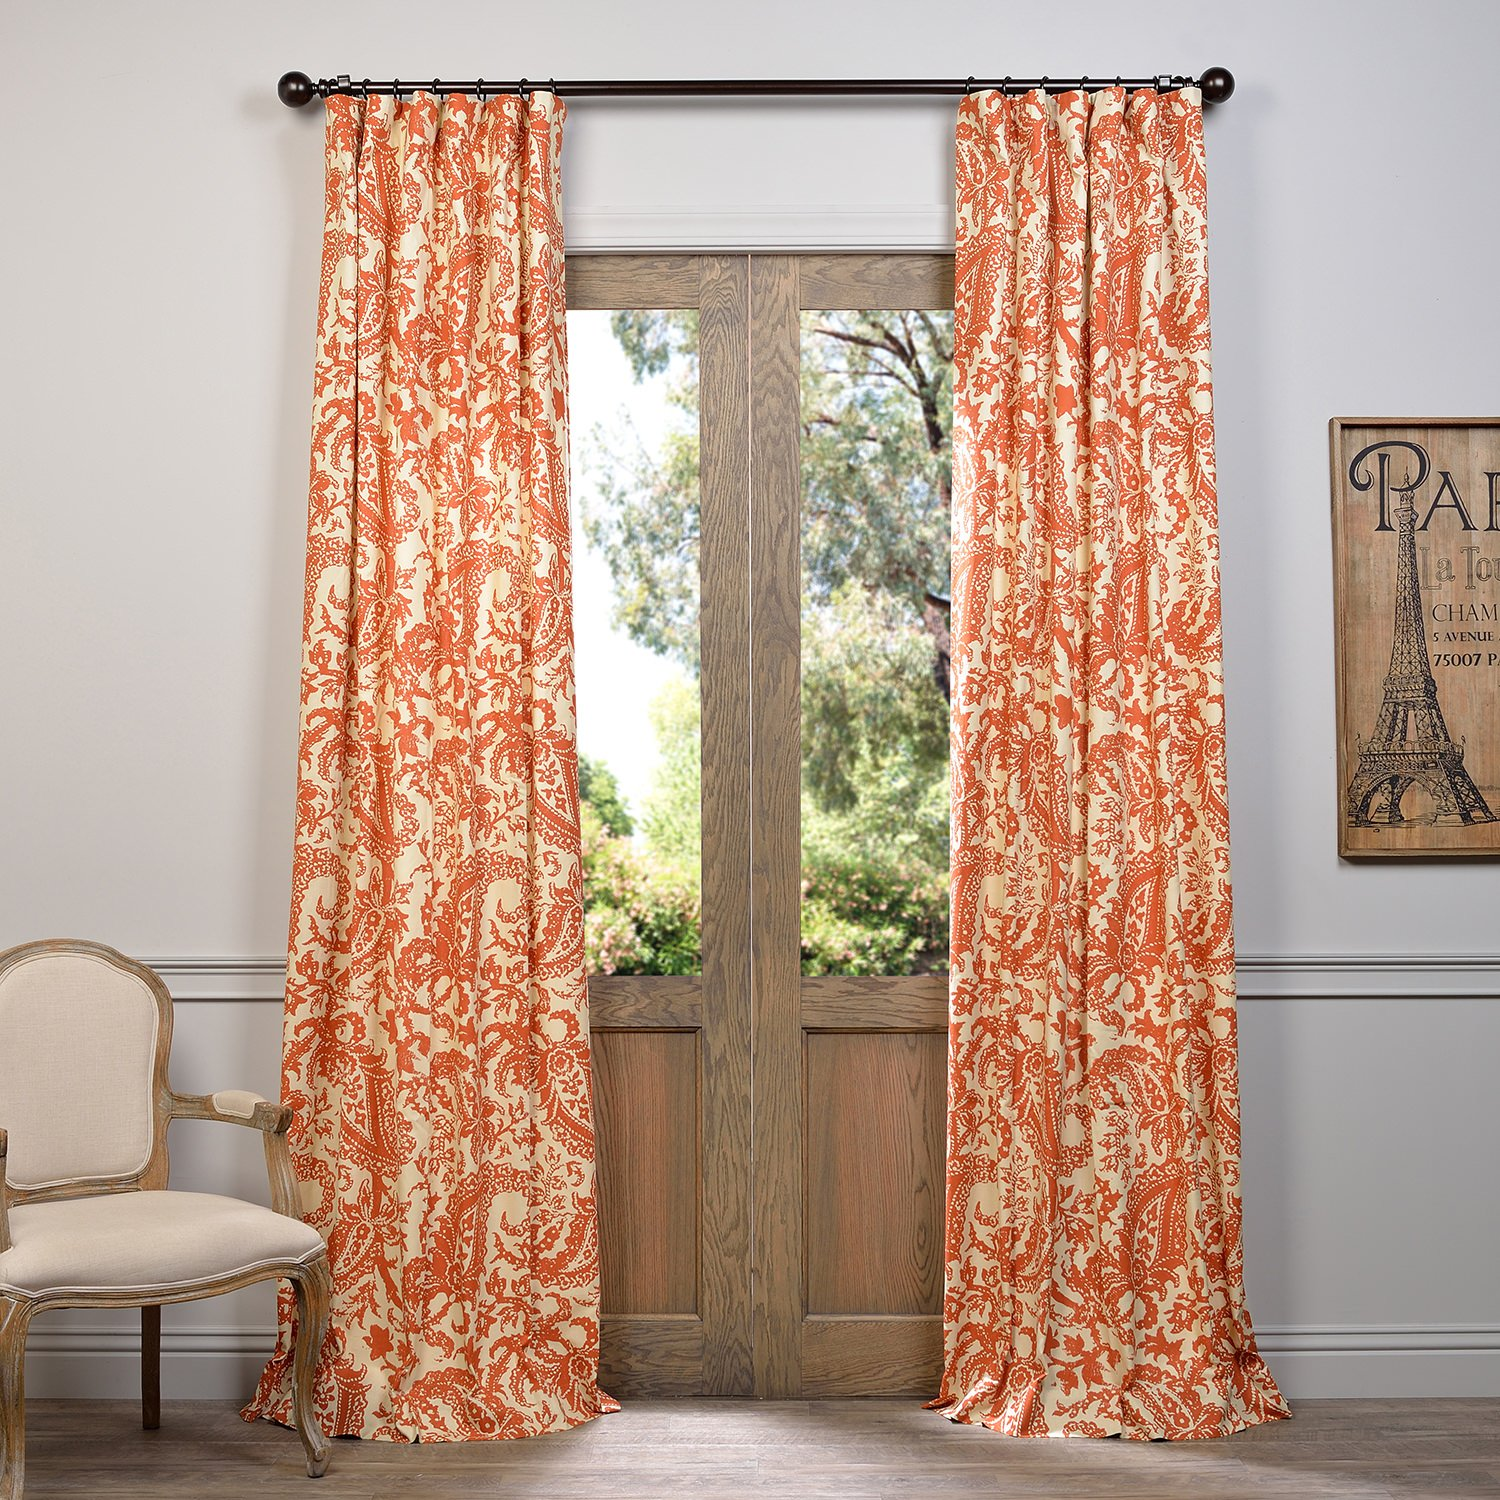 Half Price Drapes PRCT-D09A-96 Edina Rust Printed Cotton Curtain, Orange